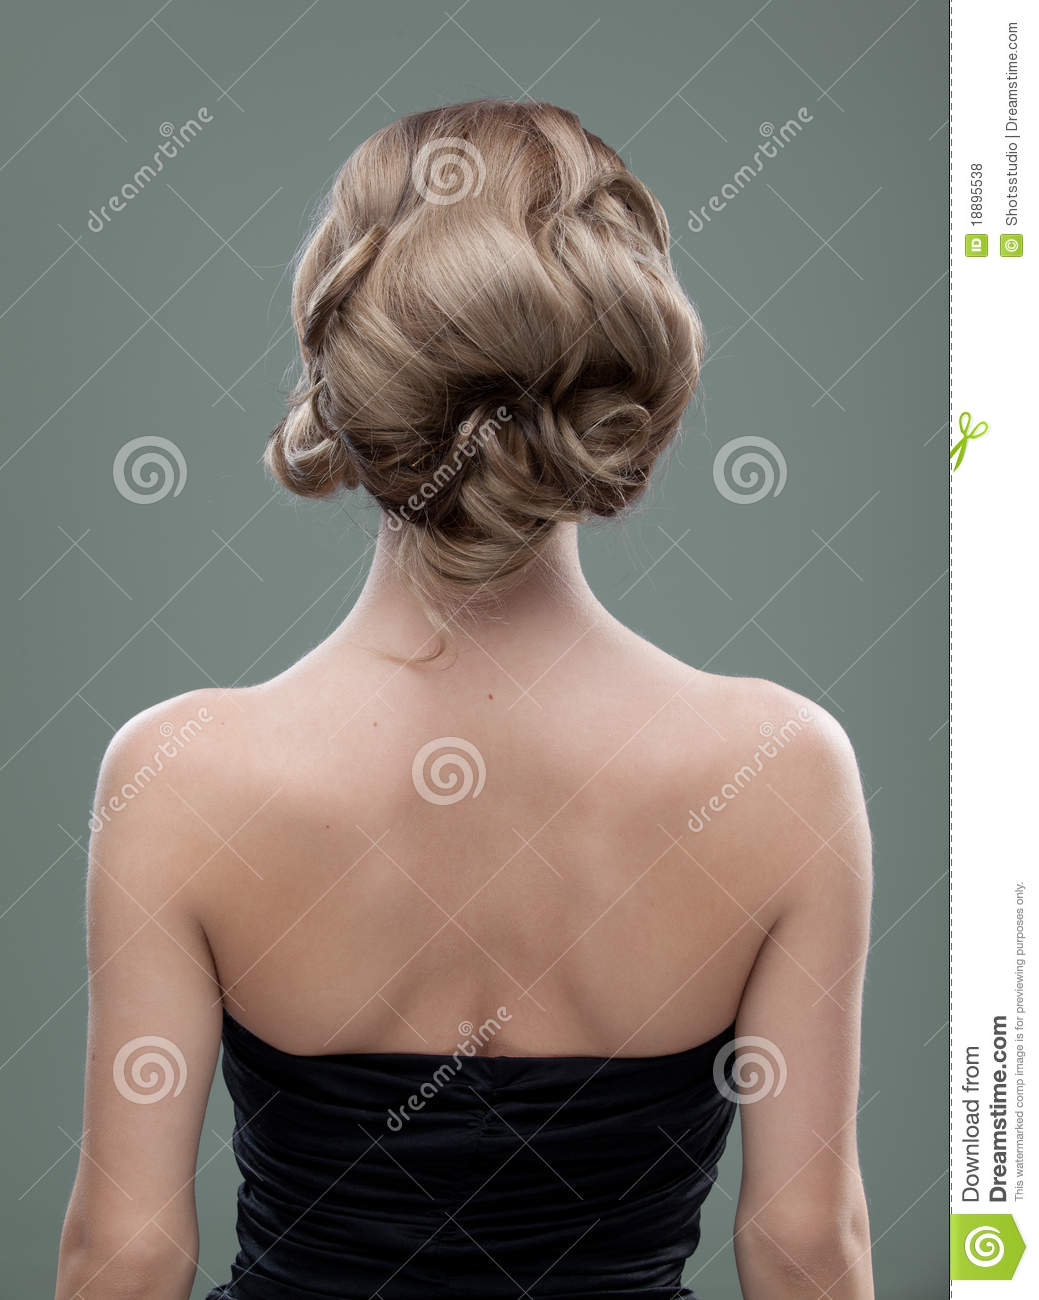 Head And Shoulders Back Image Of A Young Royalty Free